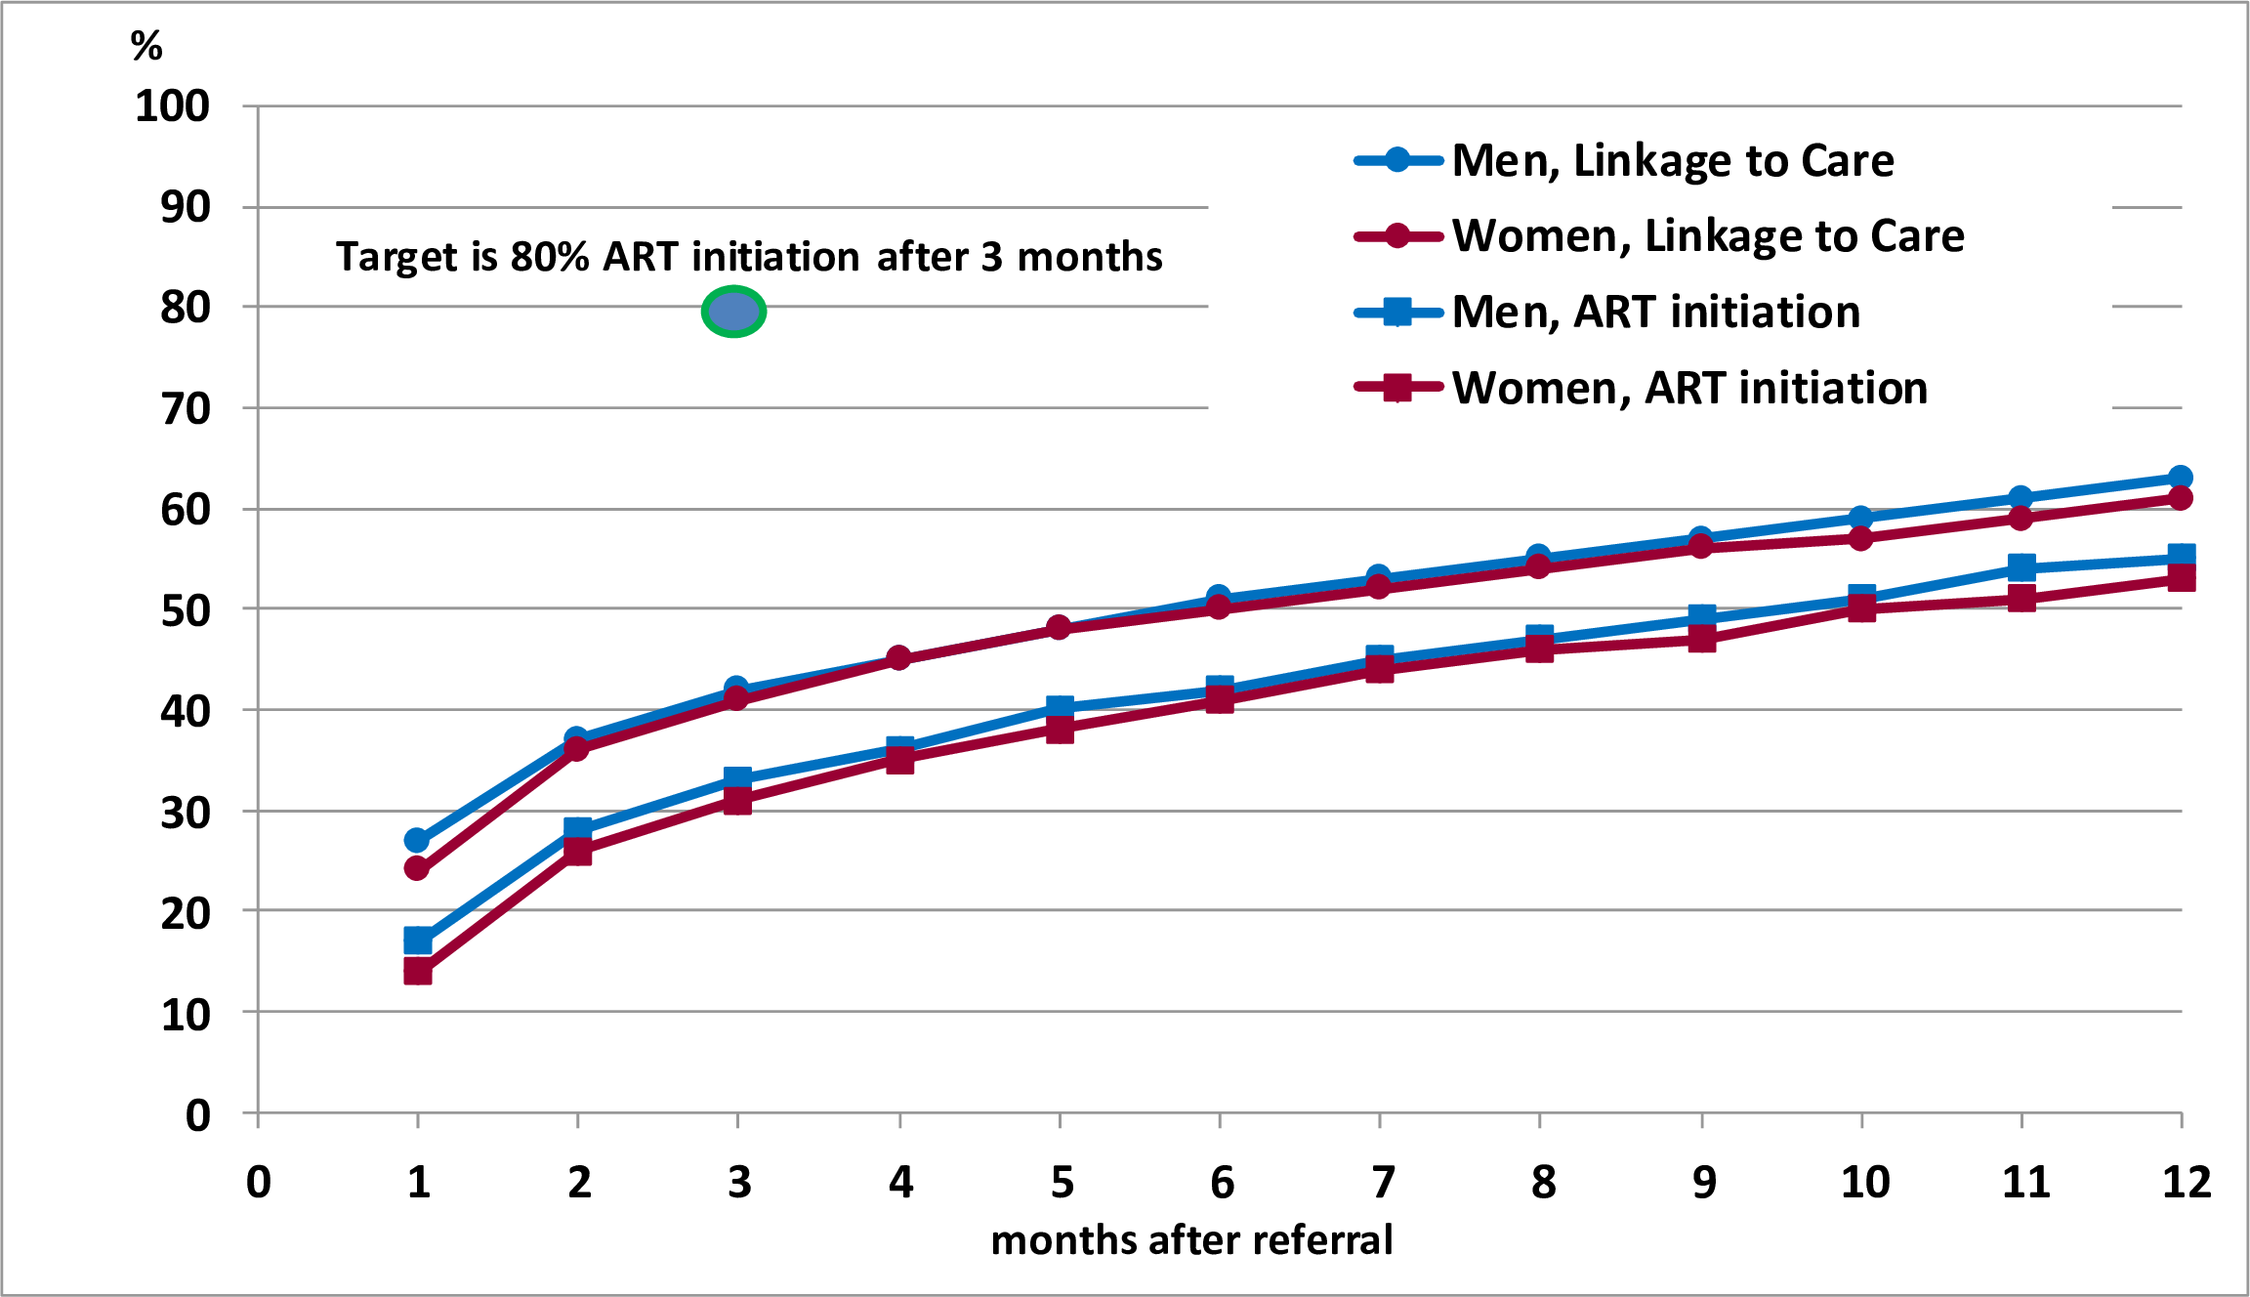 Time from referral to linkage to care and ART initiation during the first annual round of the PopART intervention.